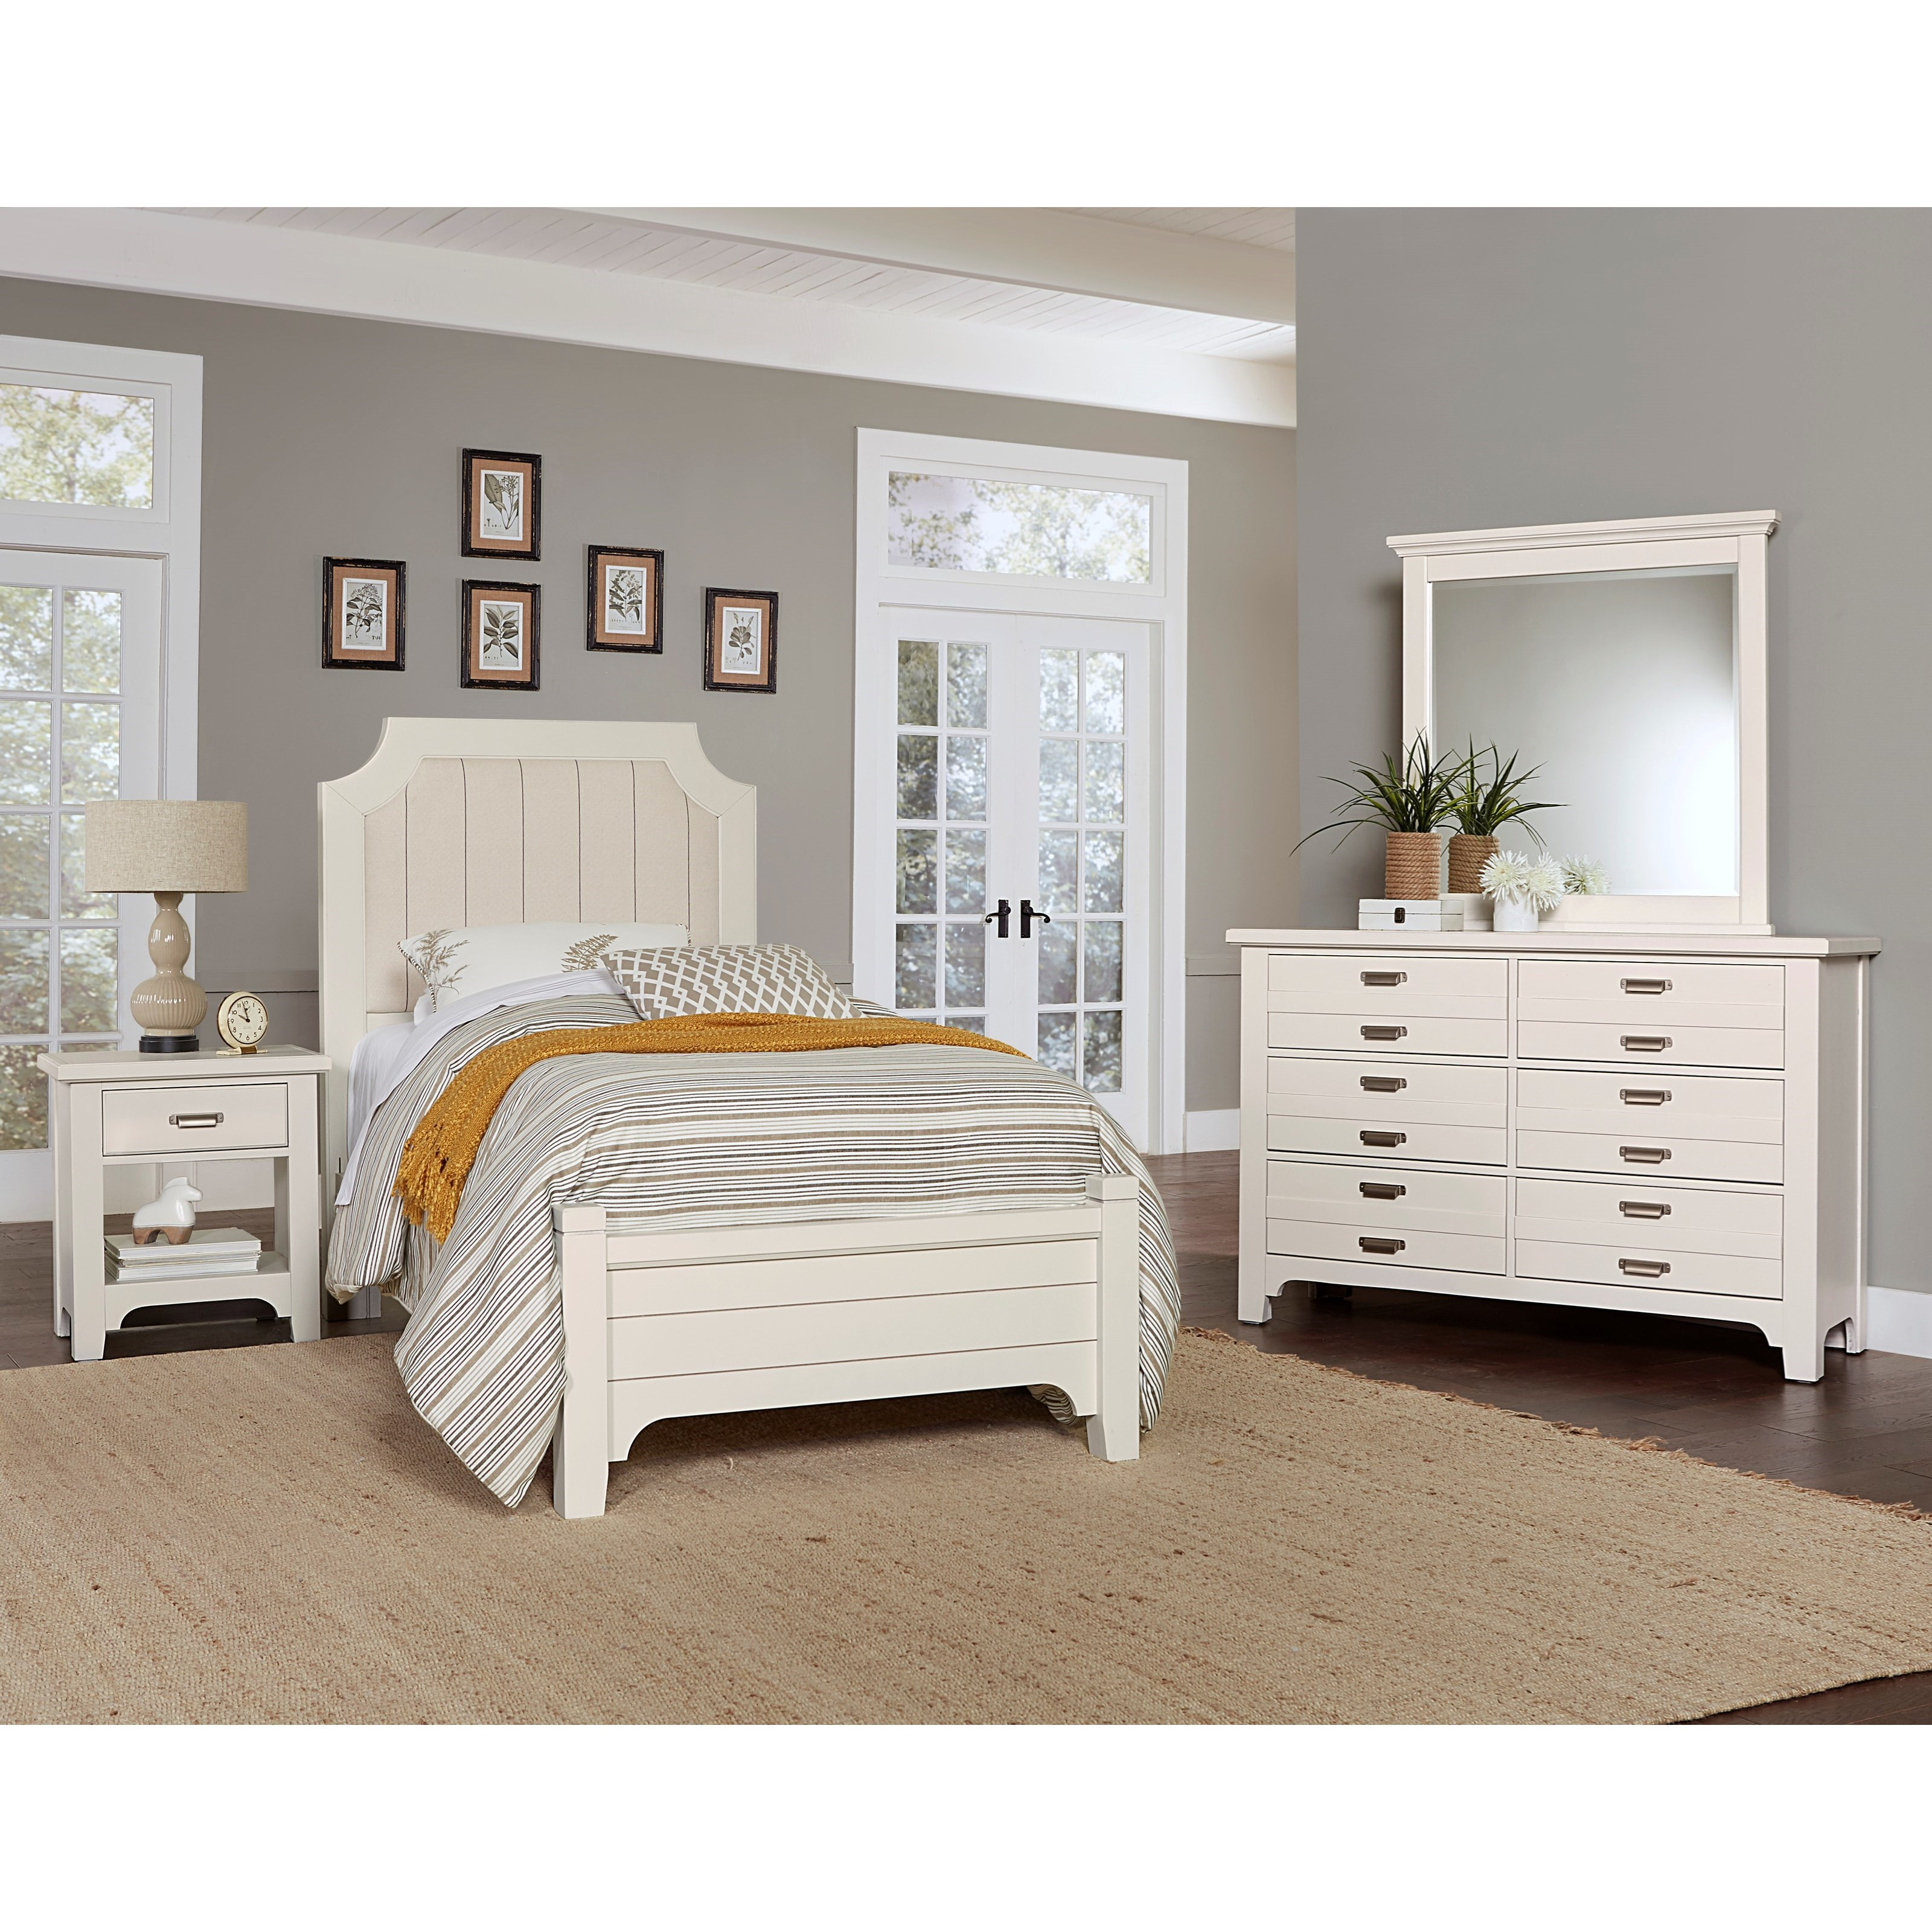 Bungalow Twin Bedroom Group by Vaughan-Bassett at Crowley Furniture & Mattress